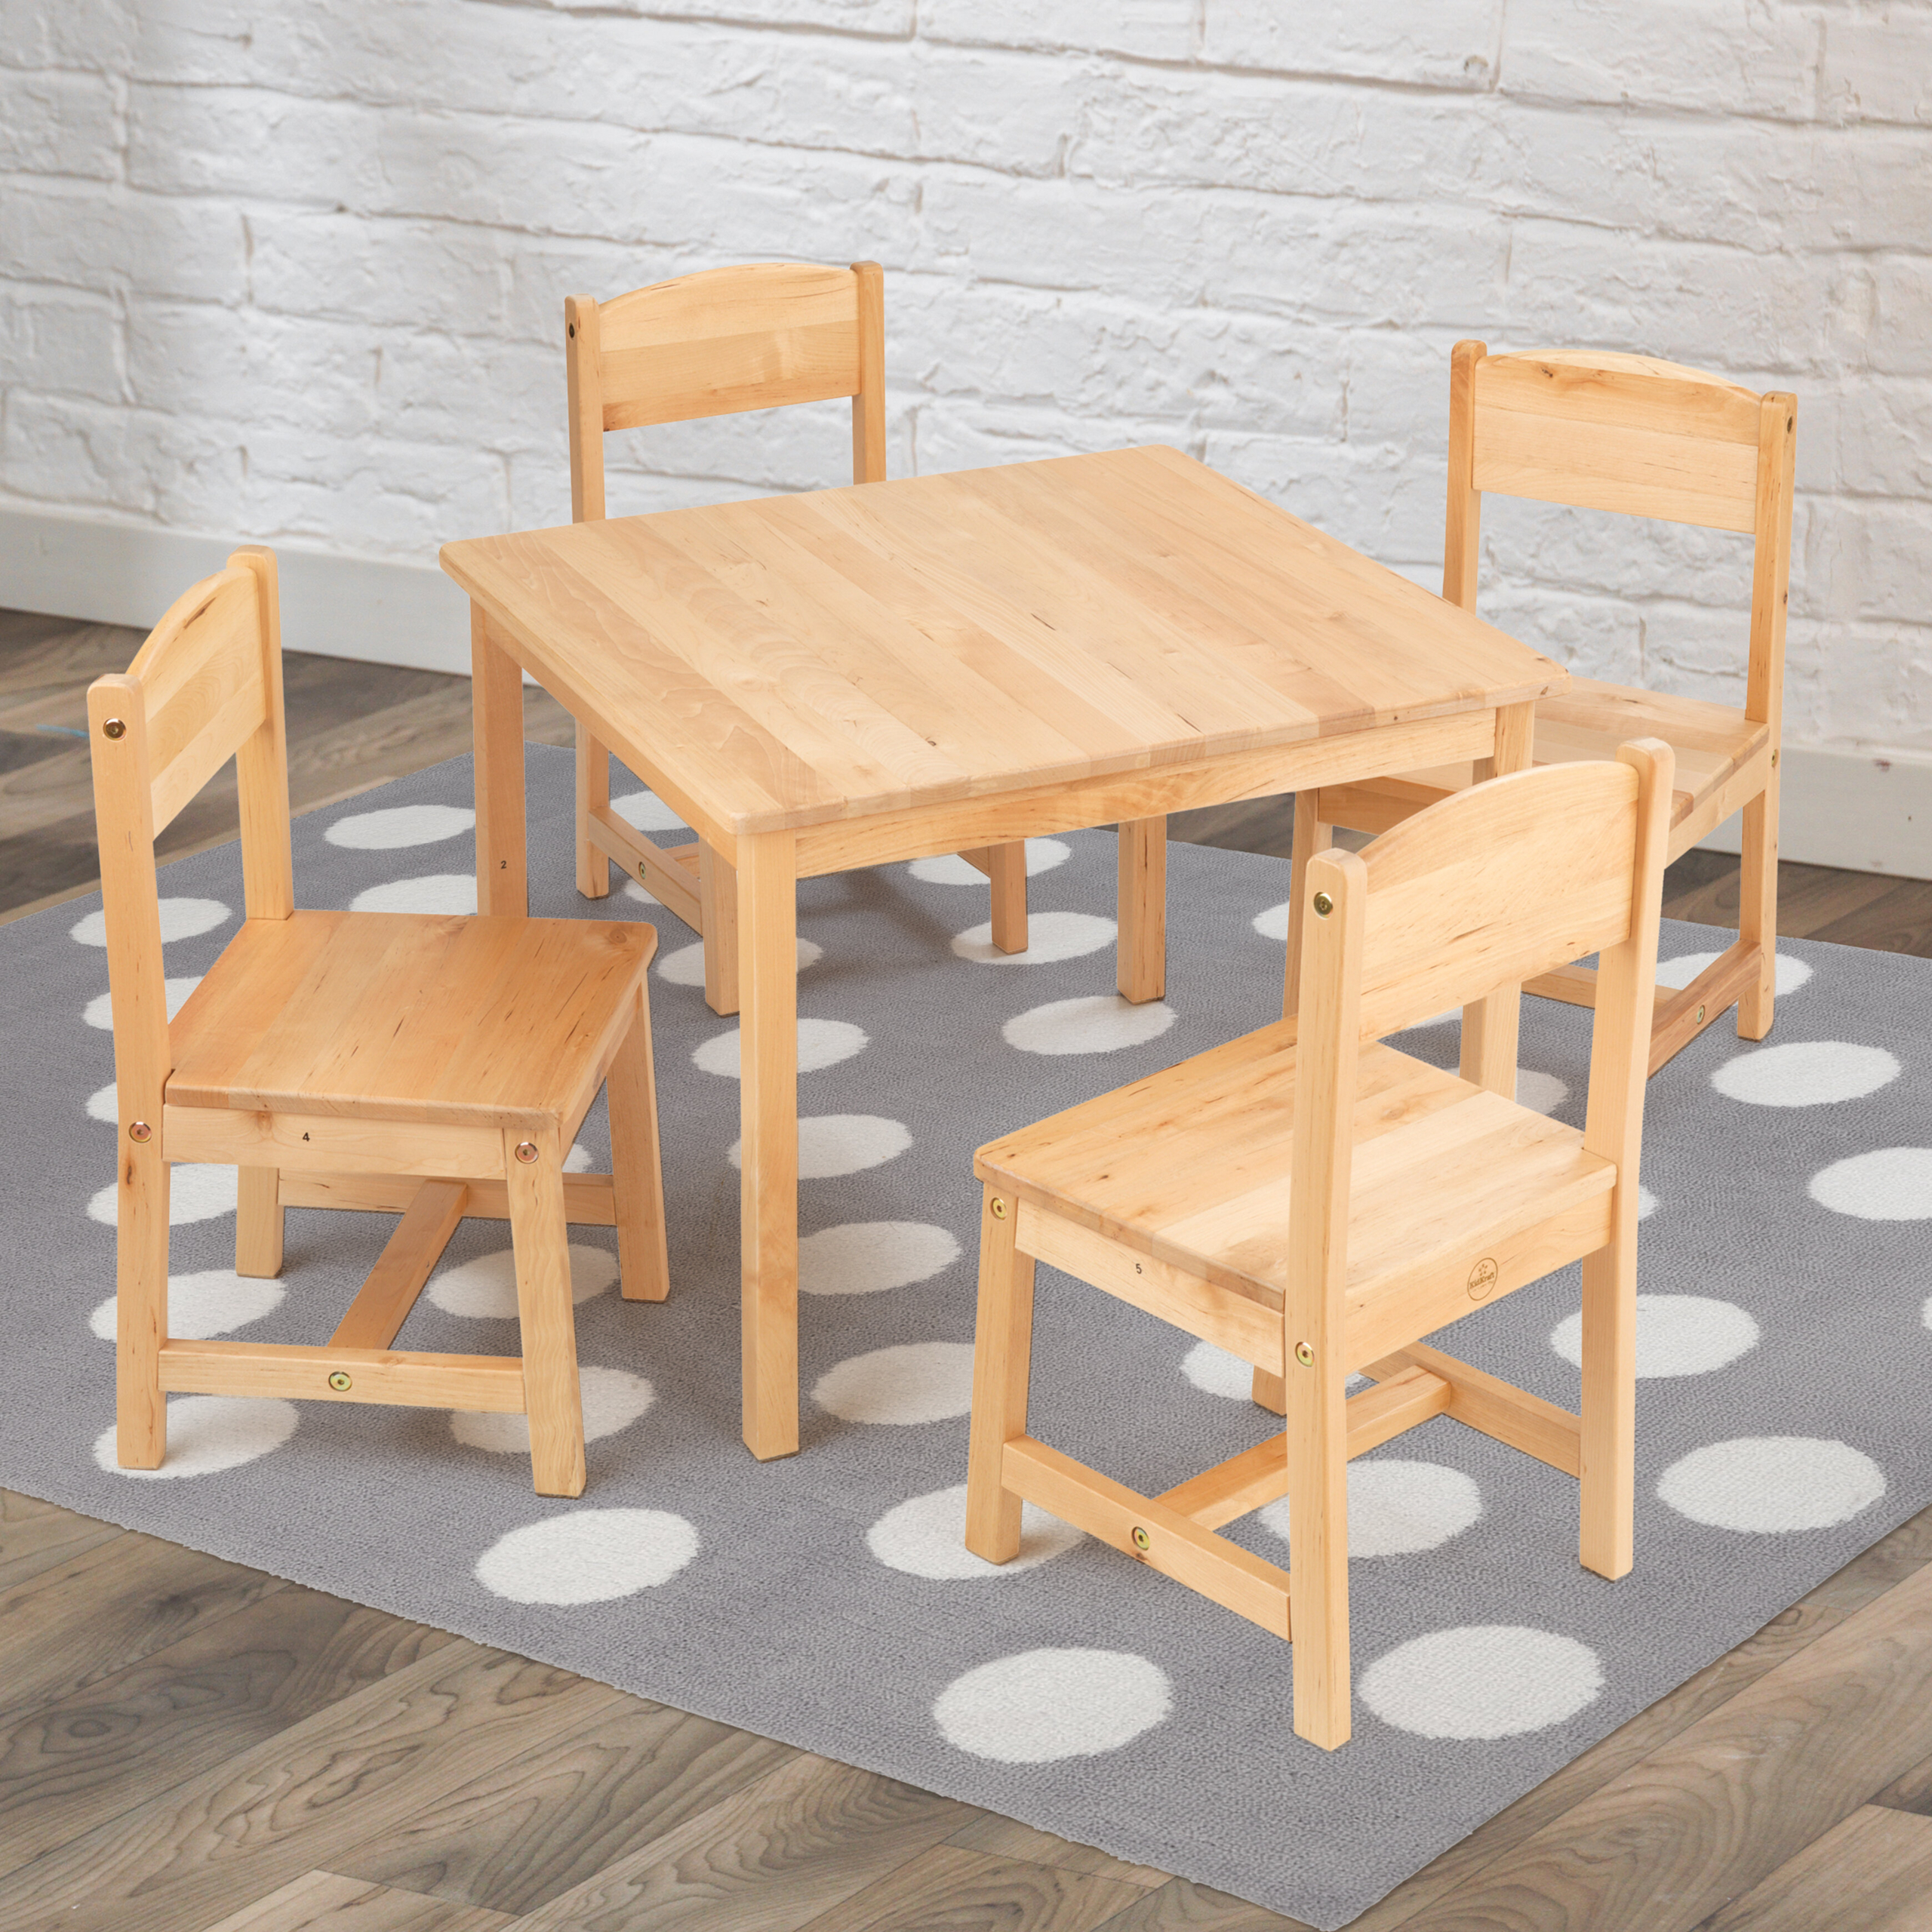 Kids Wood Table And Chairs Montessori Table And Chairs Visual Hunt